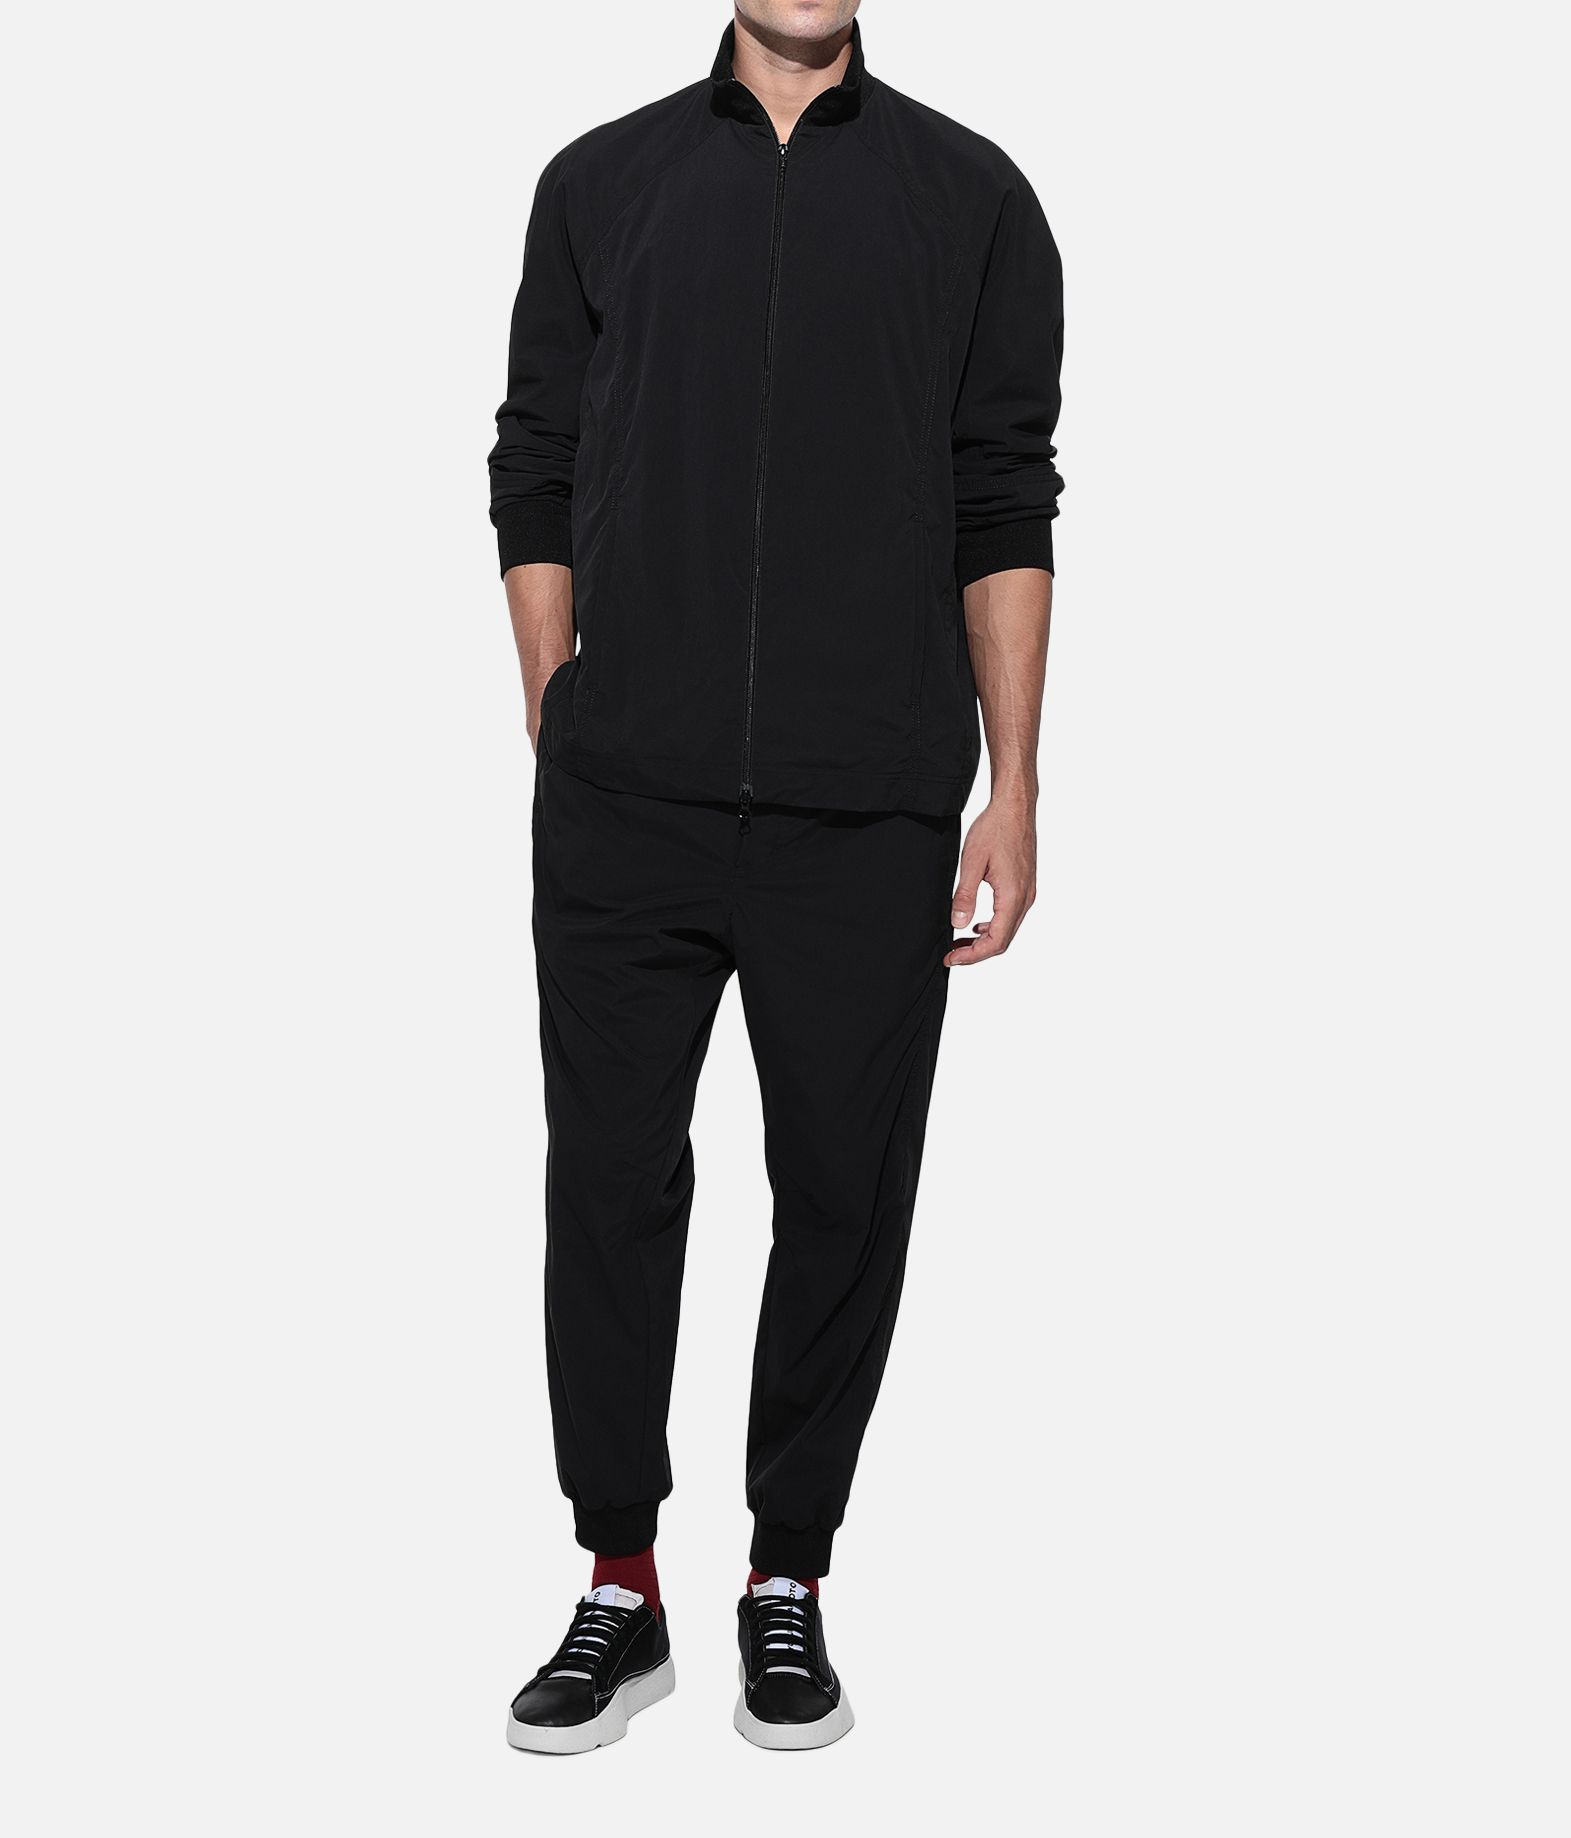 Y-3 Y-3 Luxe Track Jacket Track top メンズ a